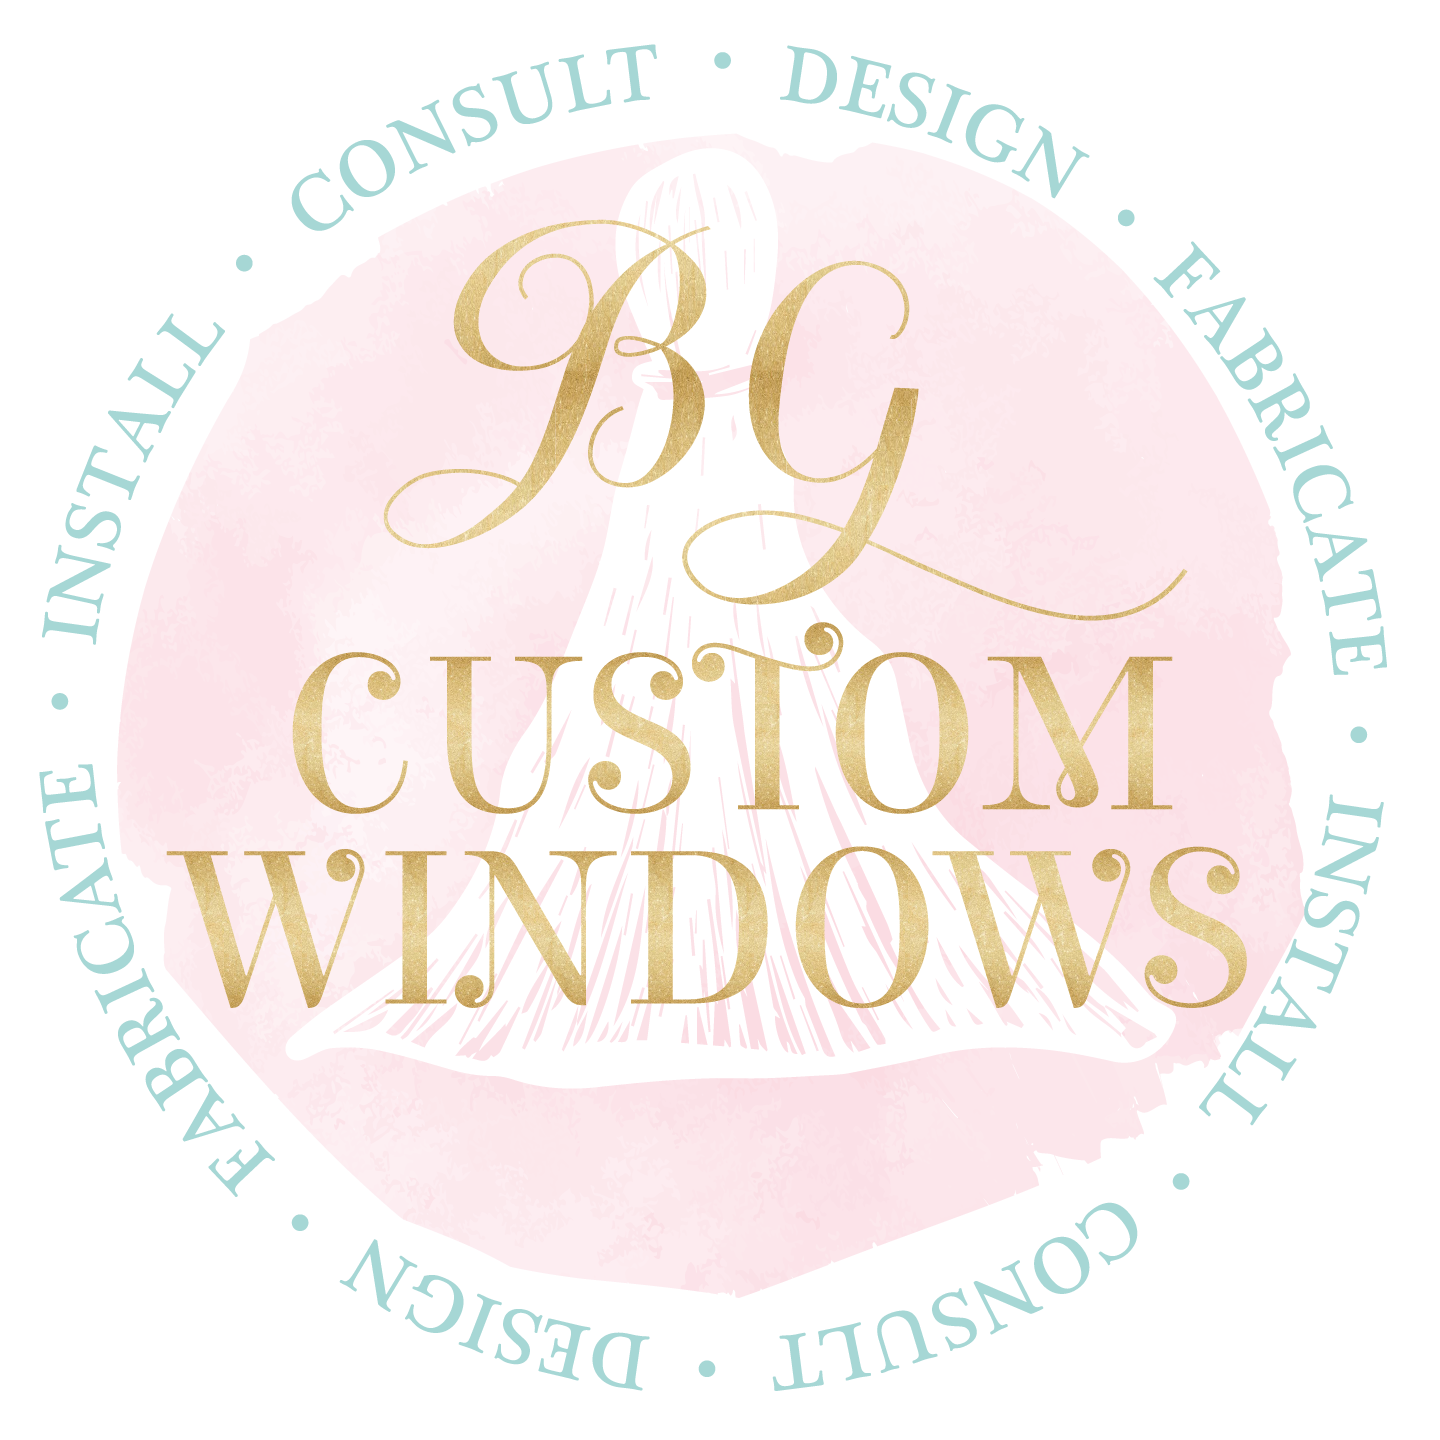 BG Custom Windows